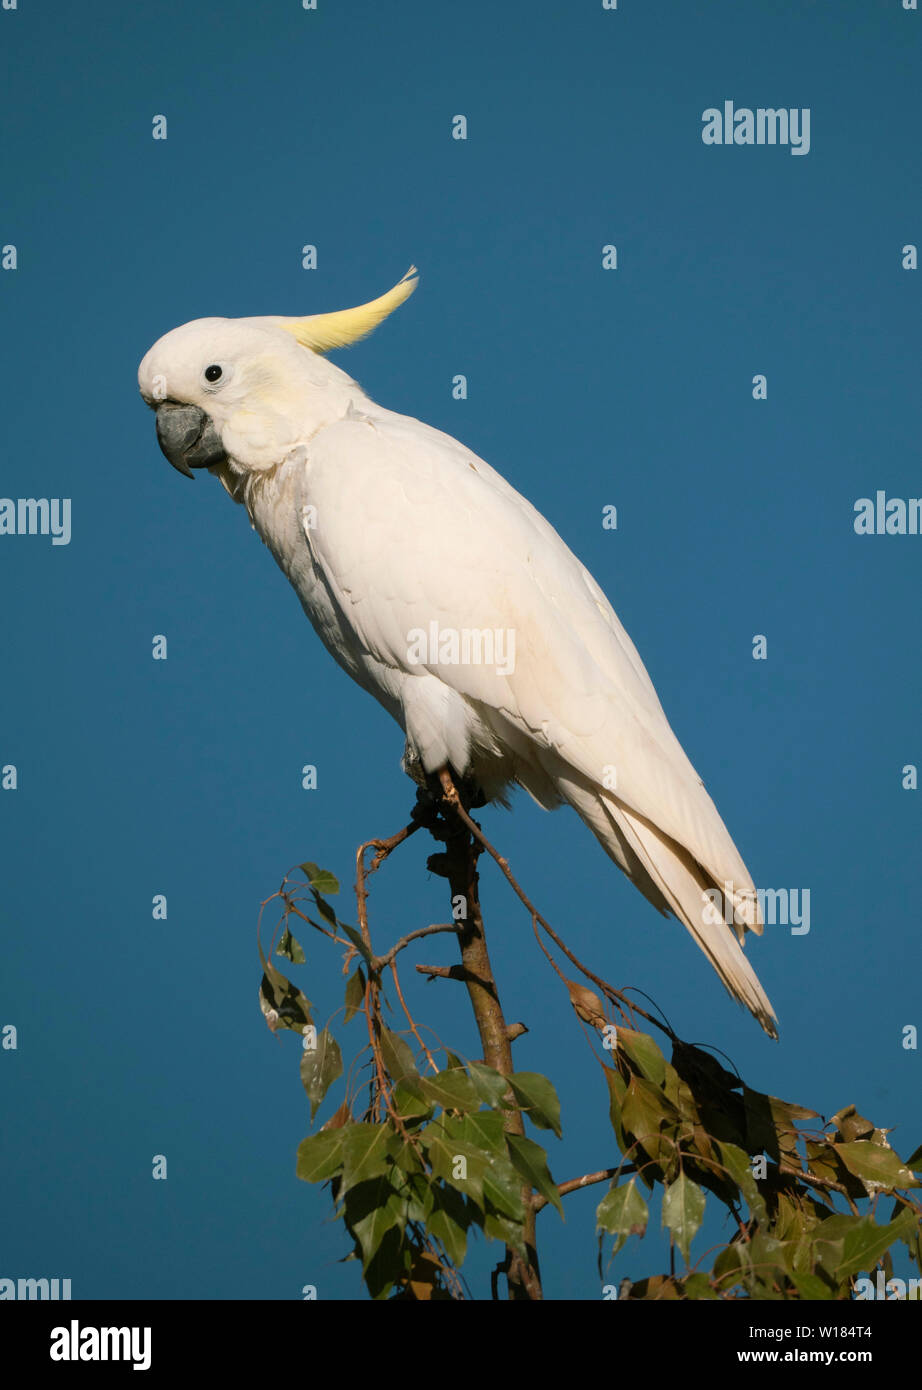 Sulphur-crested Cockatoo, Cacatua galerita, perched in a tree with blue sky background near Dubbo New South Wales, Australia Stock Photo